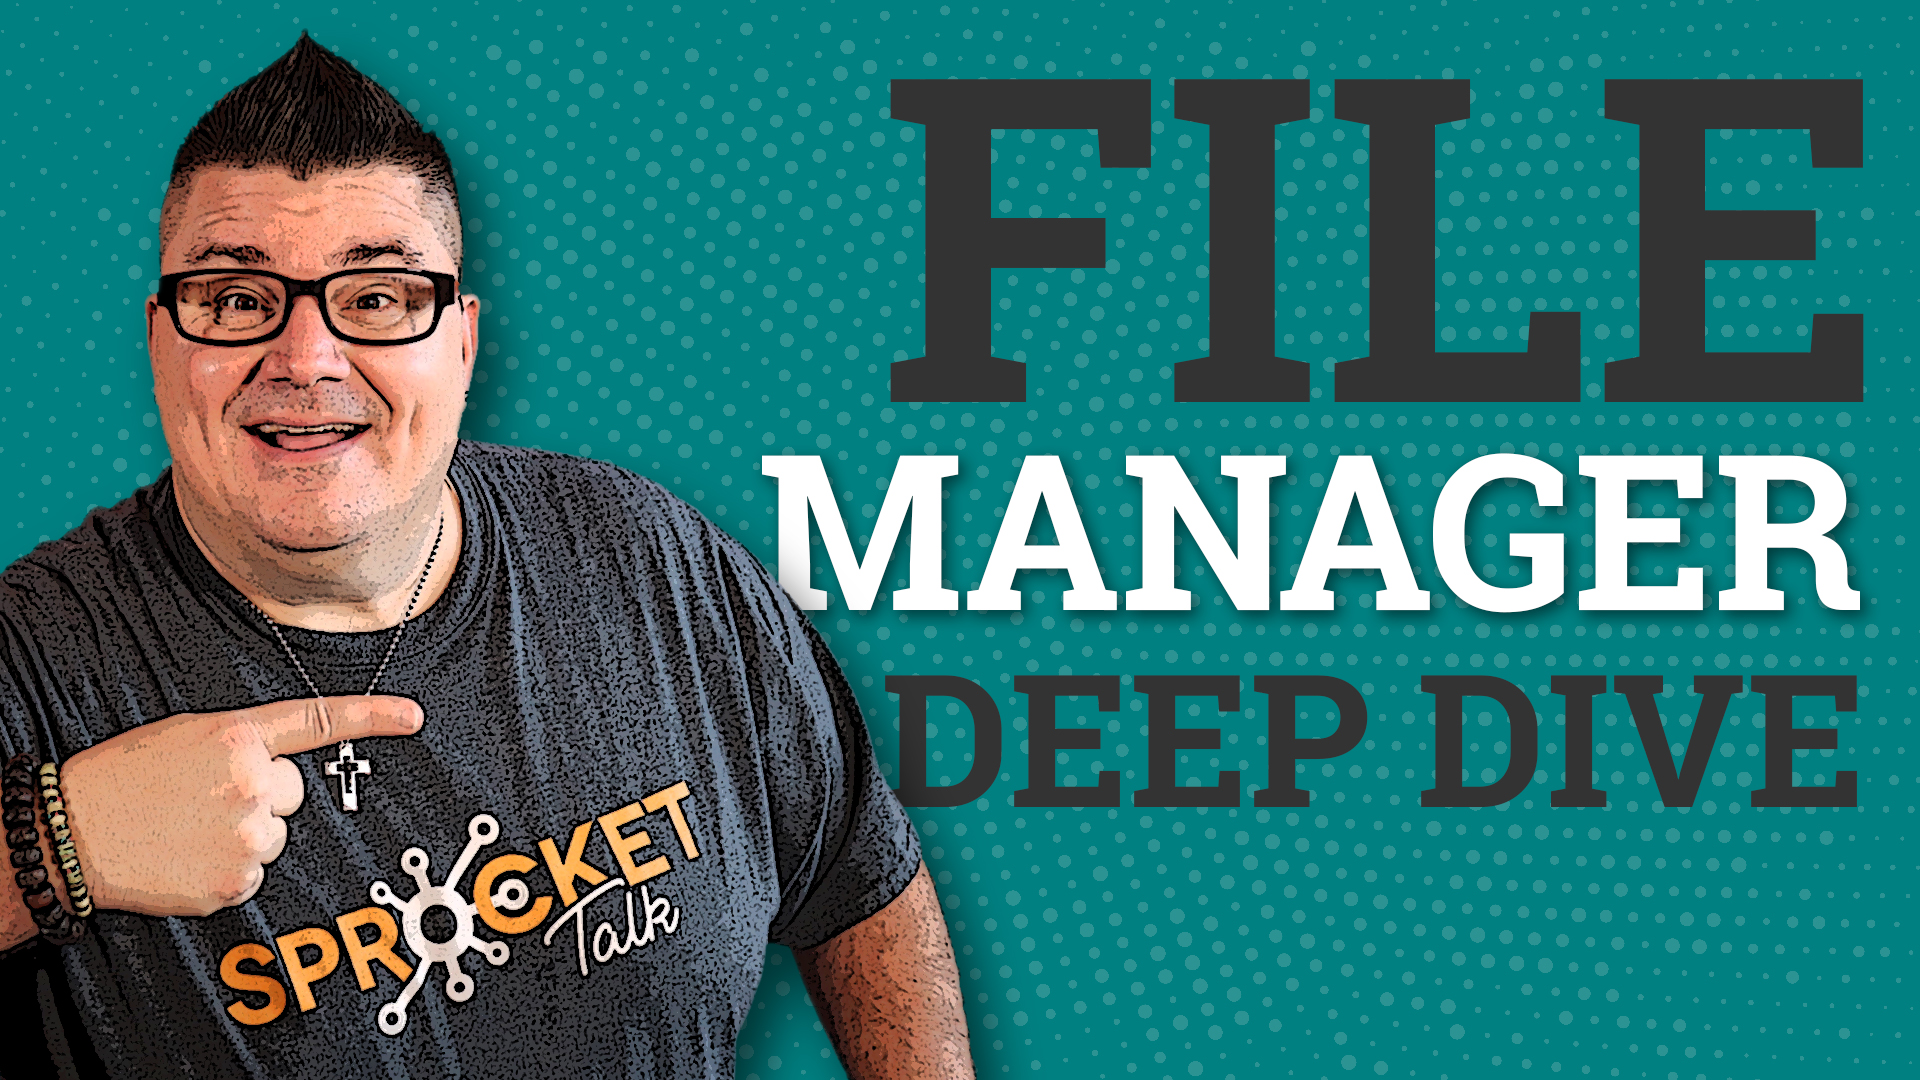 What is The HubSpot File Manager?